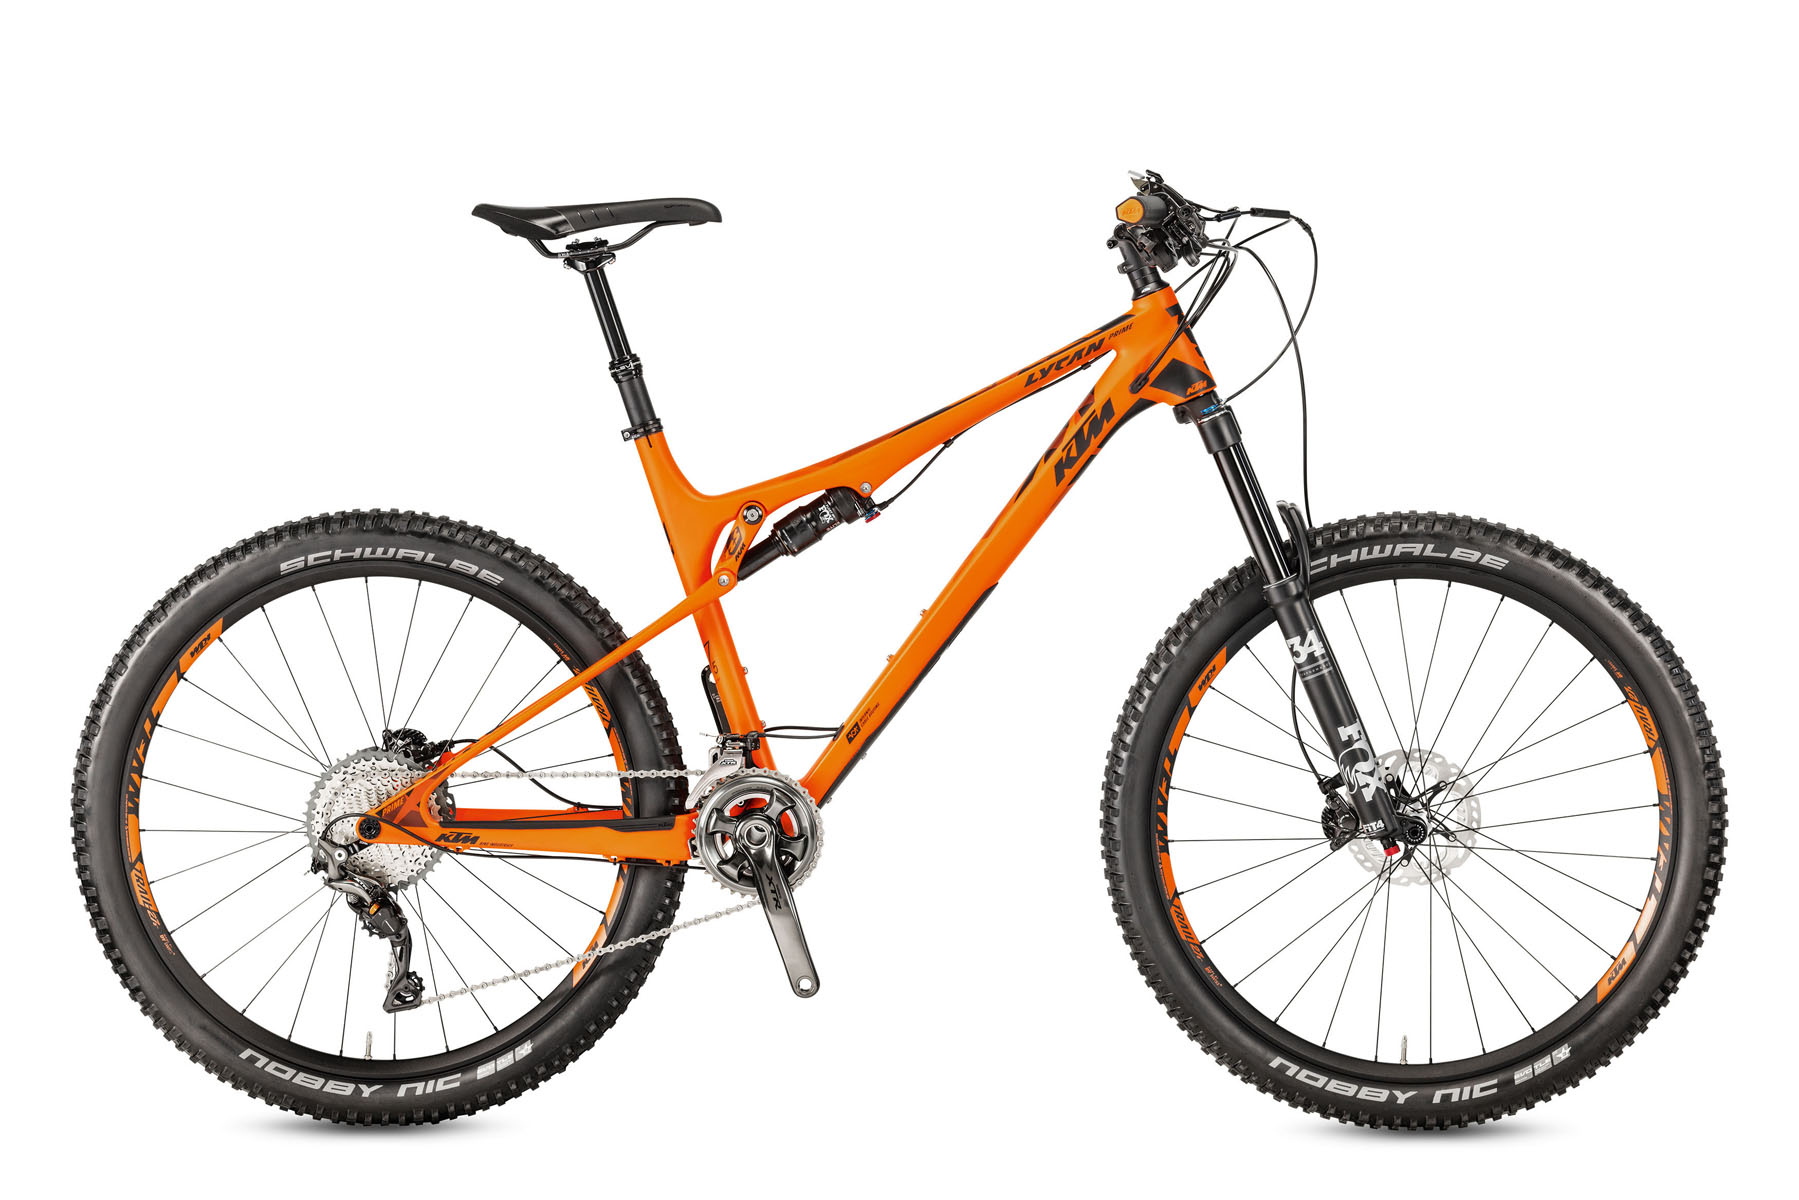 Bicicleta KTM LYCAN 27 PRIME 22S XTR Full Suspension – 2017